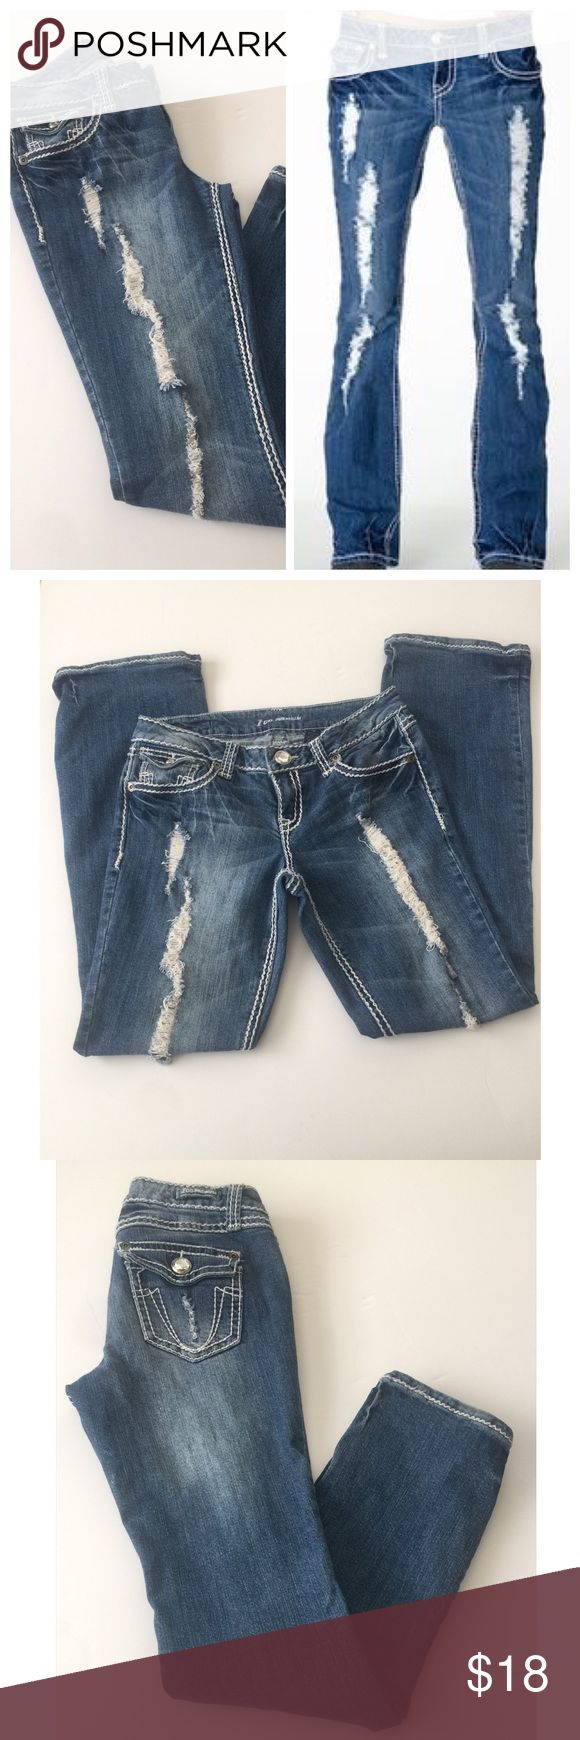 Z • Co. • Premium • Distressed • Jeans Cute distressed straight leg jeans.  Brand • Z Co. Premium.  Size • 9.  Fabric • 99% cotton, 1% spandex.  Condition • Worn a couple of times, in beautiful condition.   Measurements upon request. ZCO Jeans Straight Leg